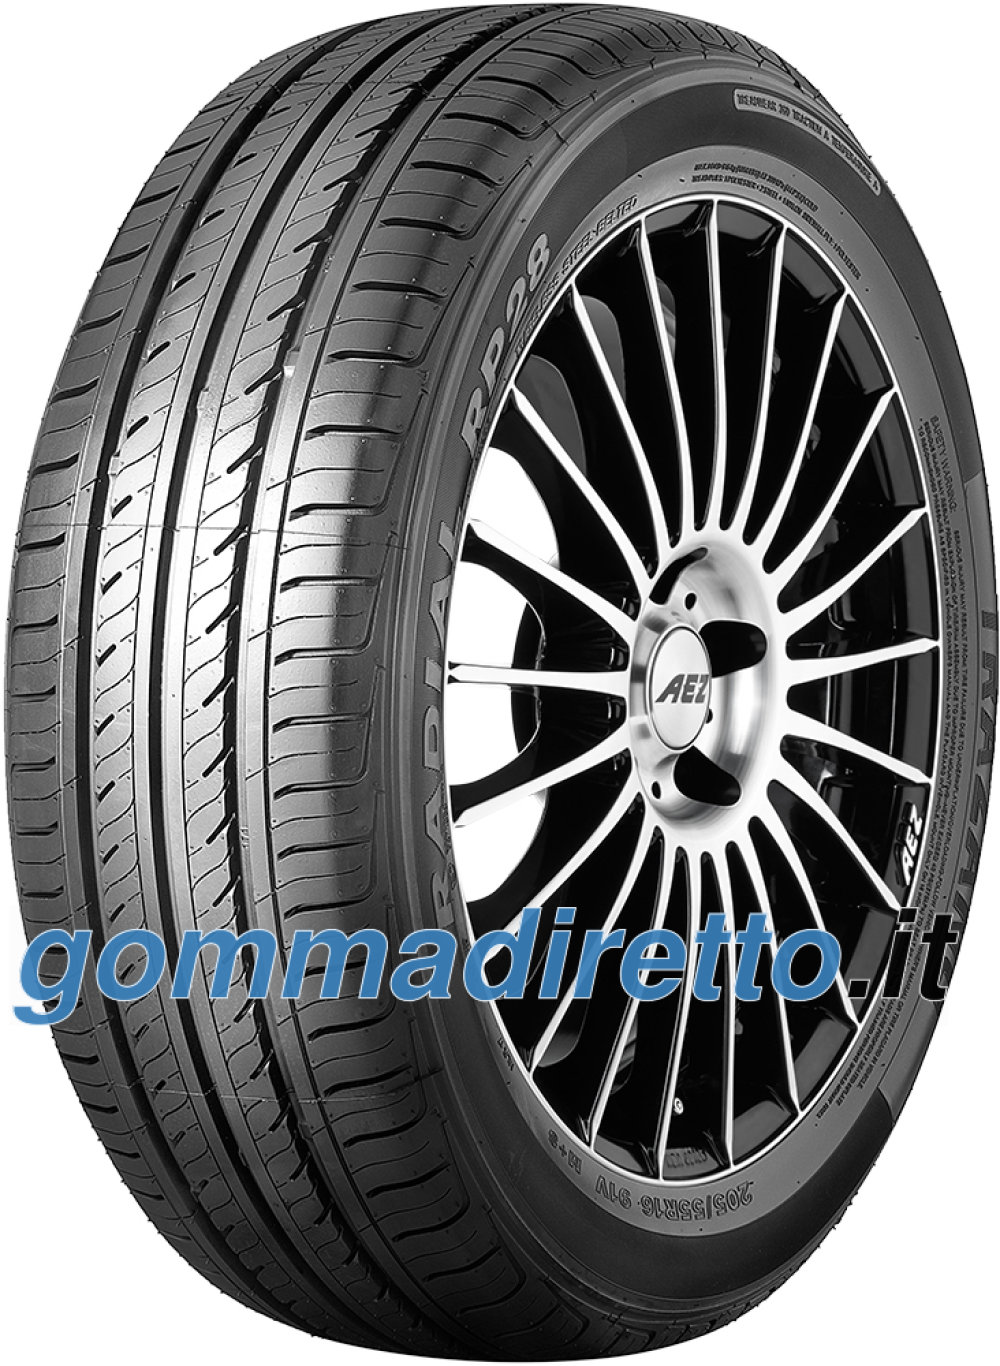 Image of Trazano RP28 ( 155/65 R13 73T )